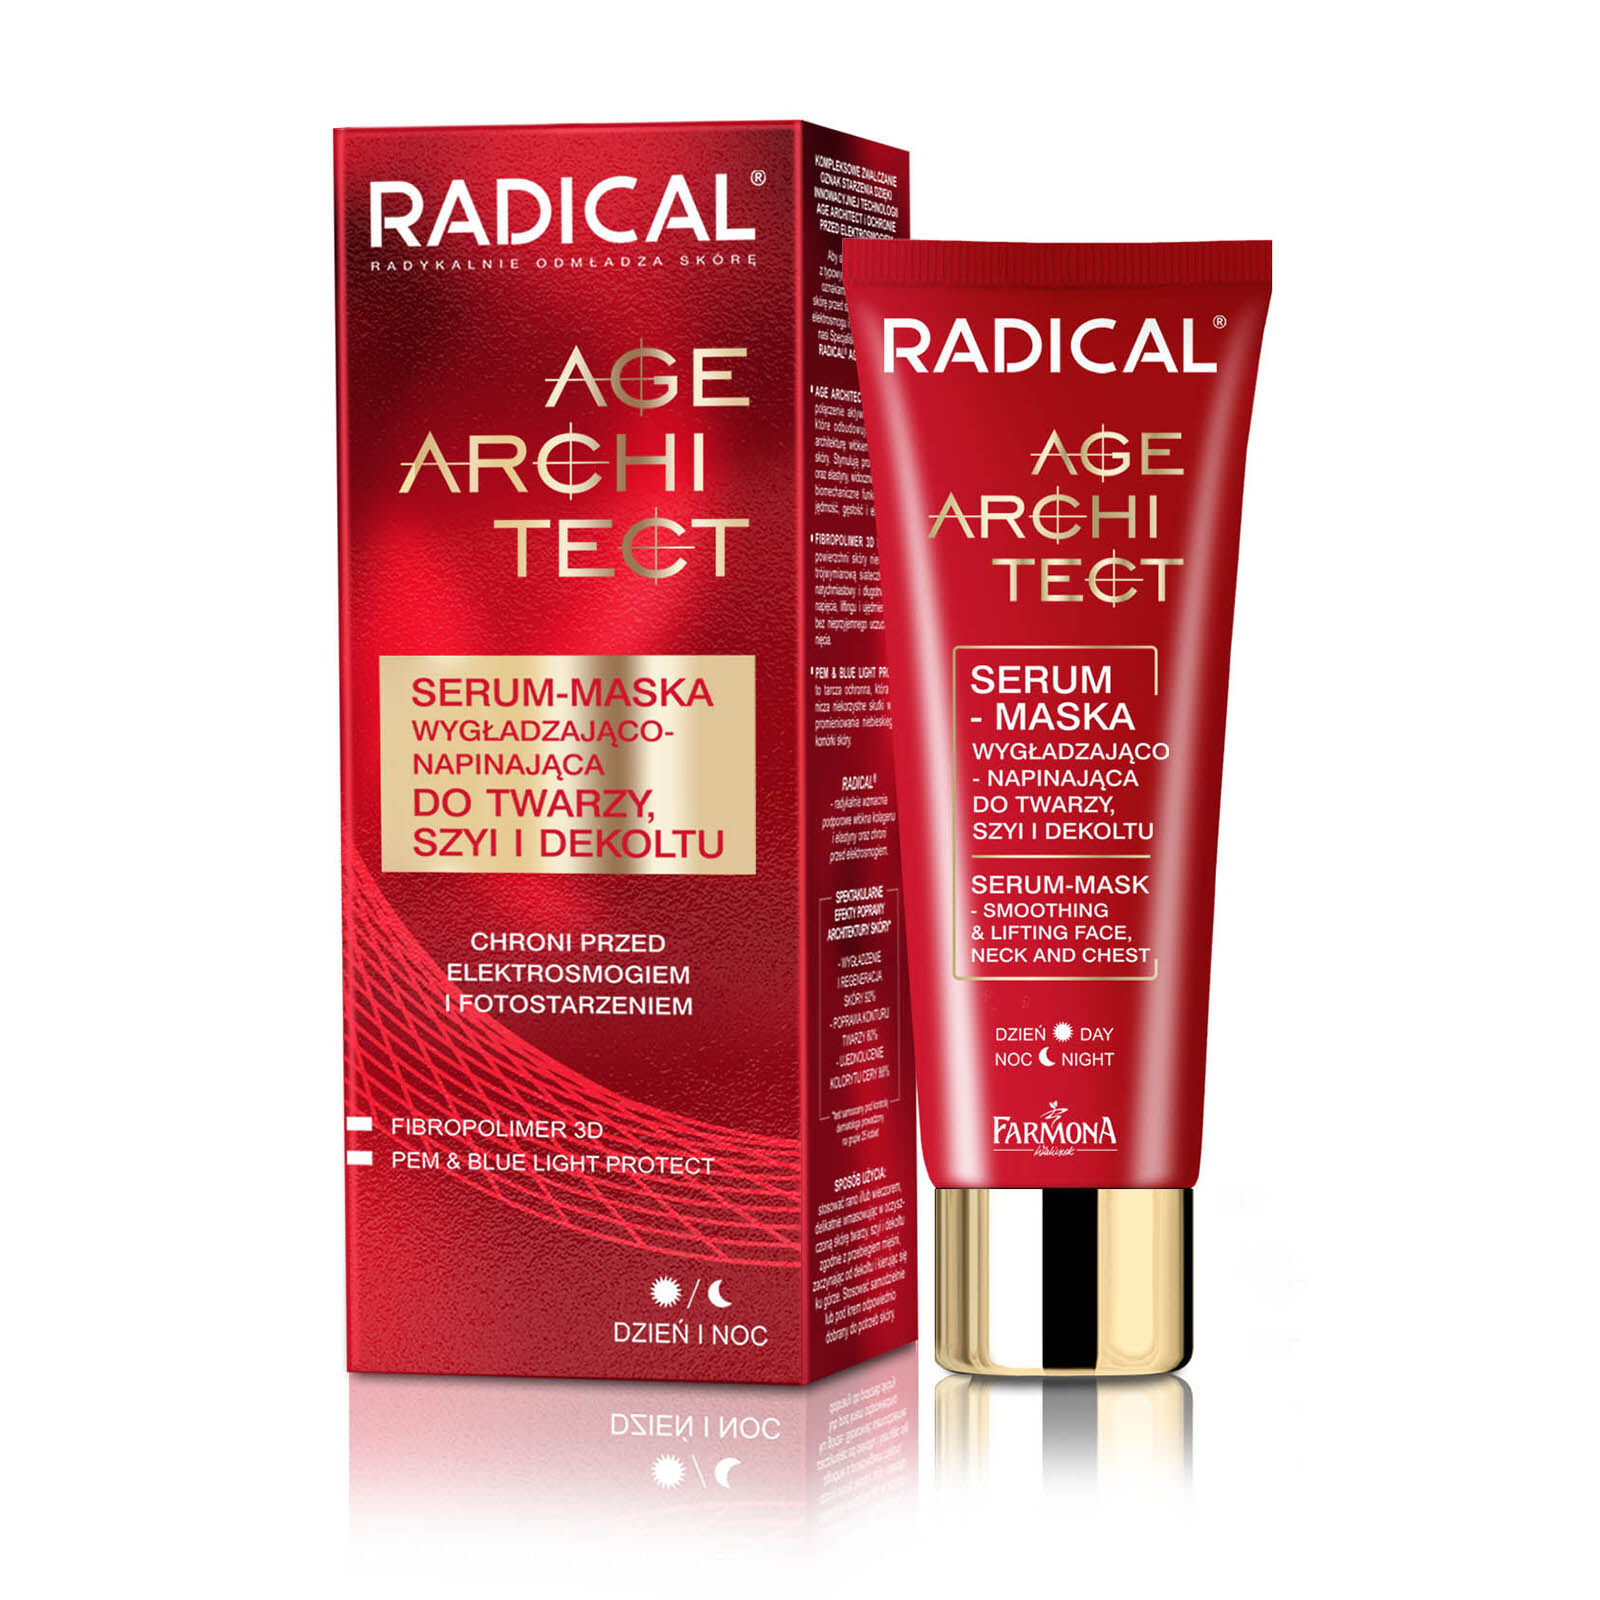 RADICAL AGE ARCHITECT Serum-Mask Smoothing And Lifting Face, Neck And Cleavage